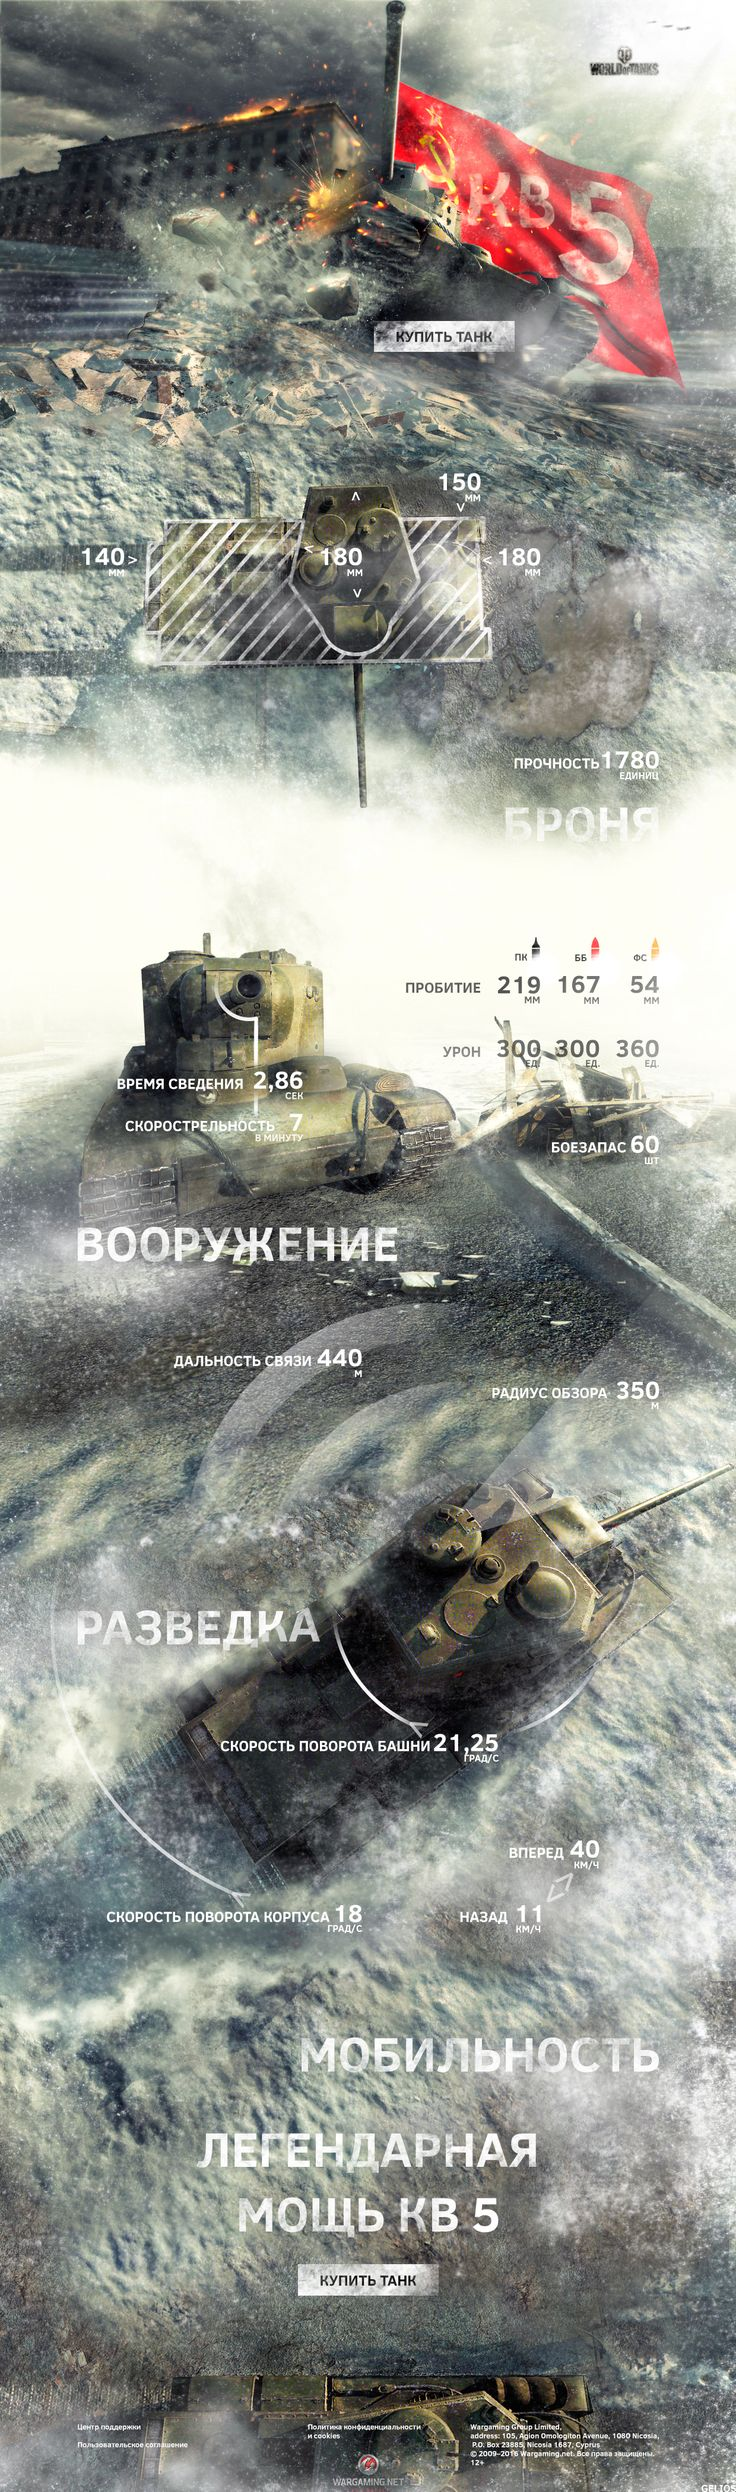 Soviet KV 5 site layout photoshop collage landing pages game